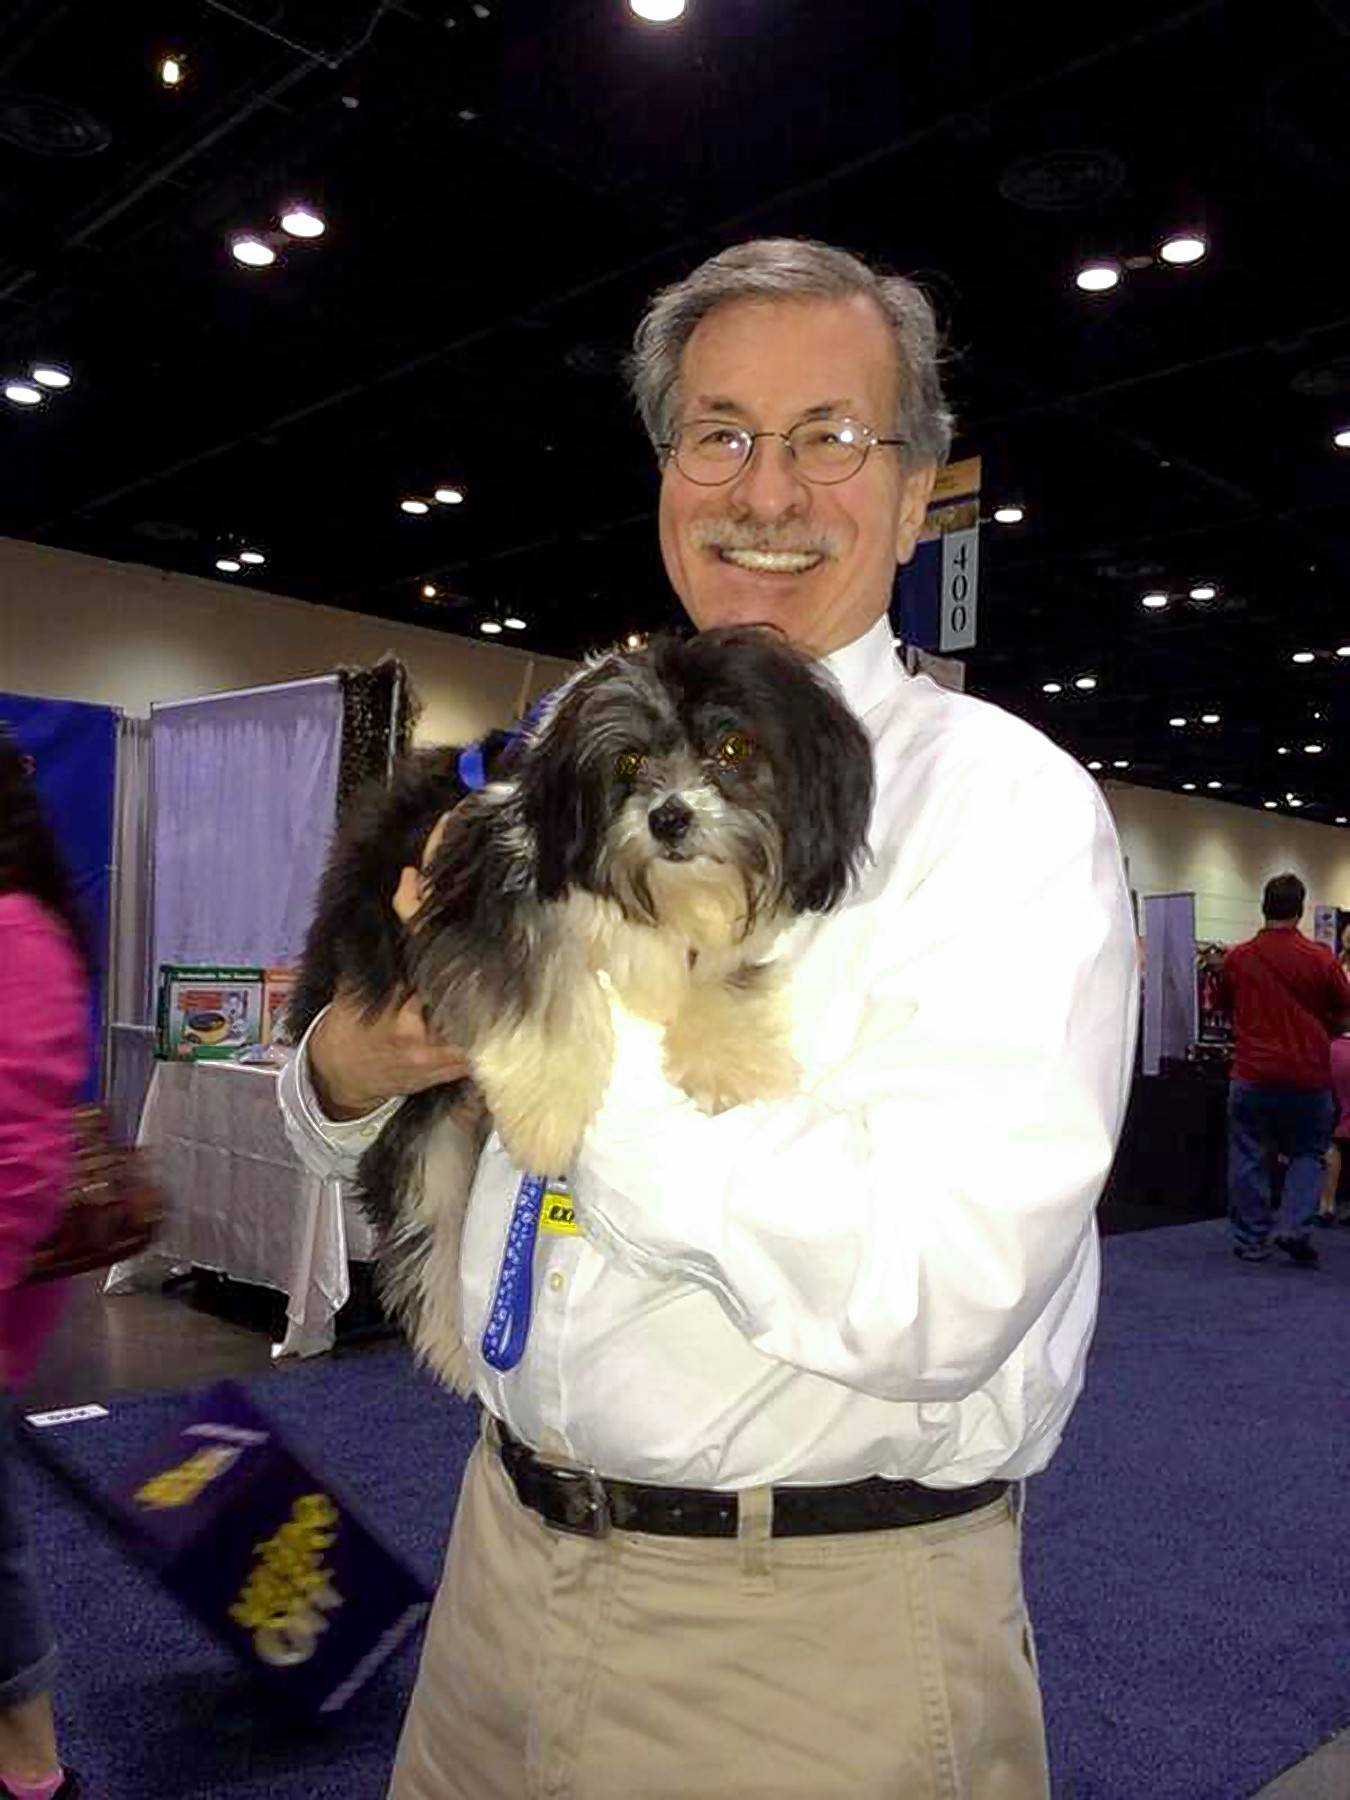 Dennis Abelson of Highland Park, holds a dog from a shelter in 2014. He is the co-founder of Matrix Partners Ltd. in Chicago.